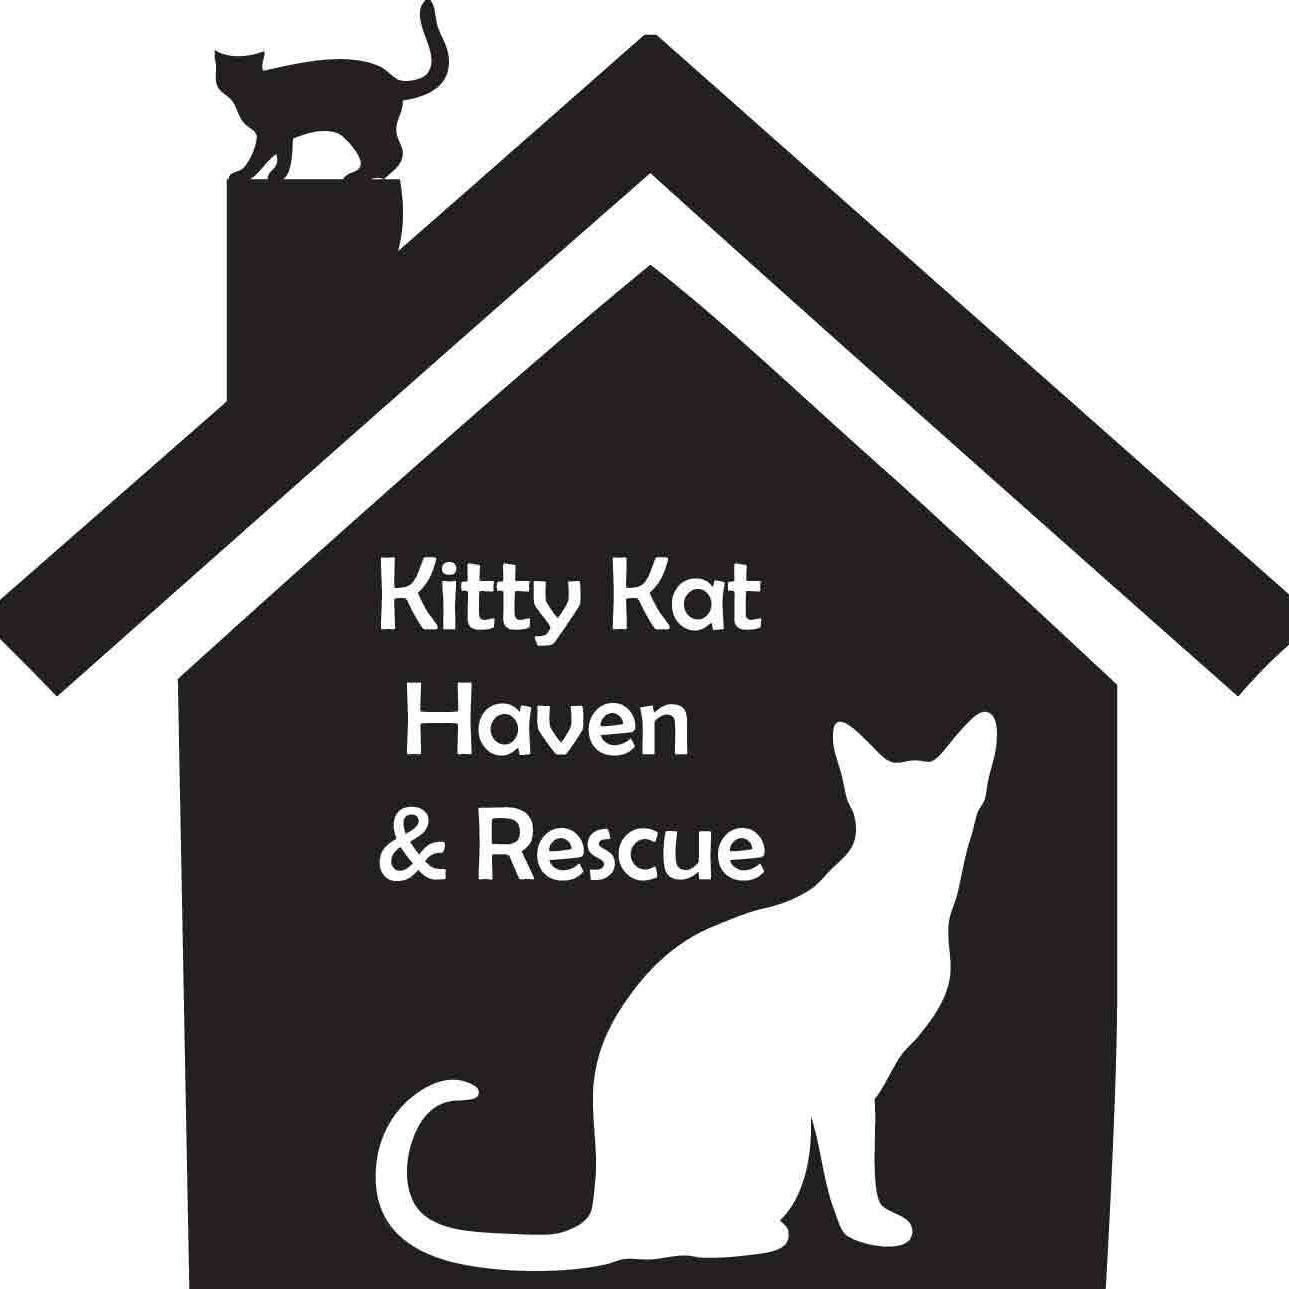 Kitty Kat Haven and Rescue